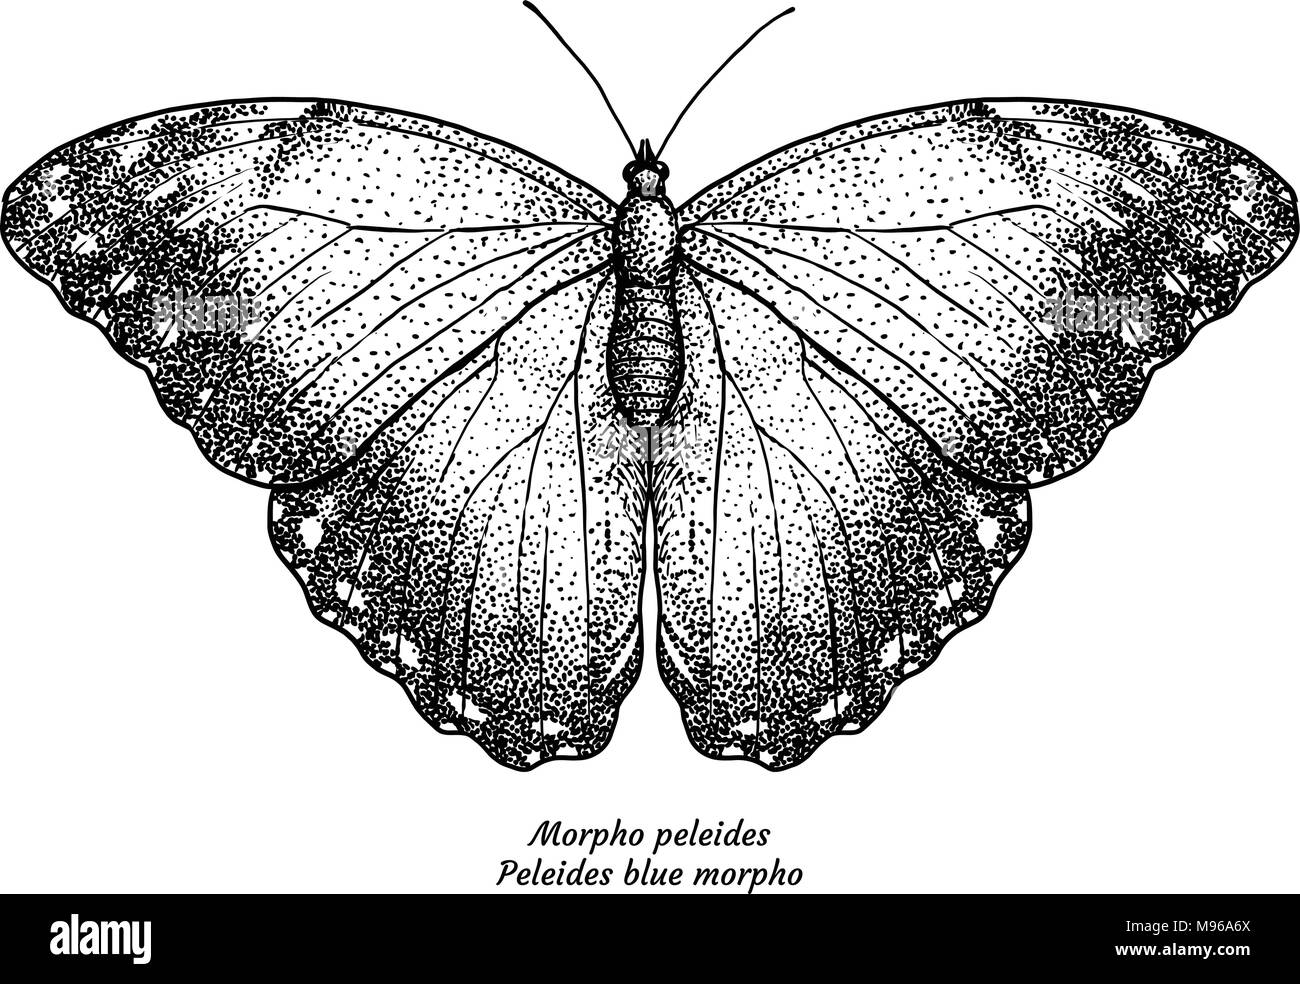 Giant Blue Morpho Butterfly Stock Photos & Giant Blue Morpho ...